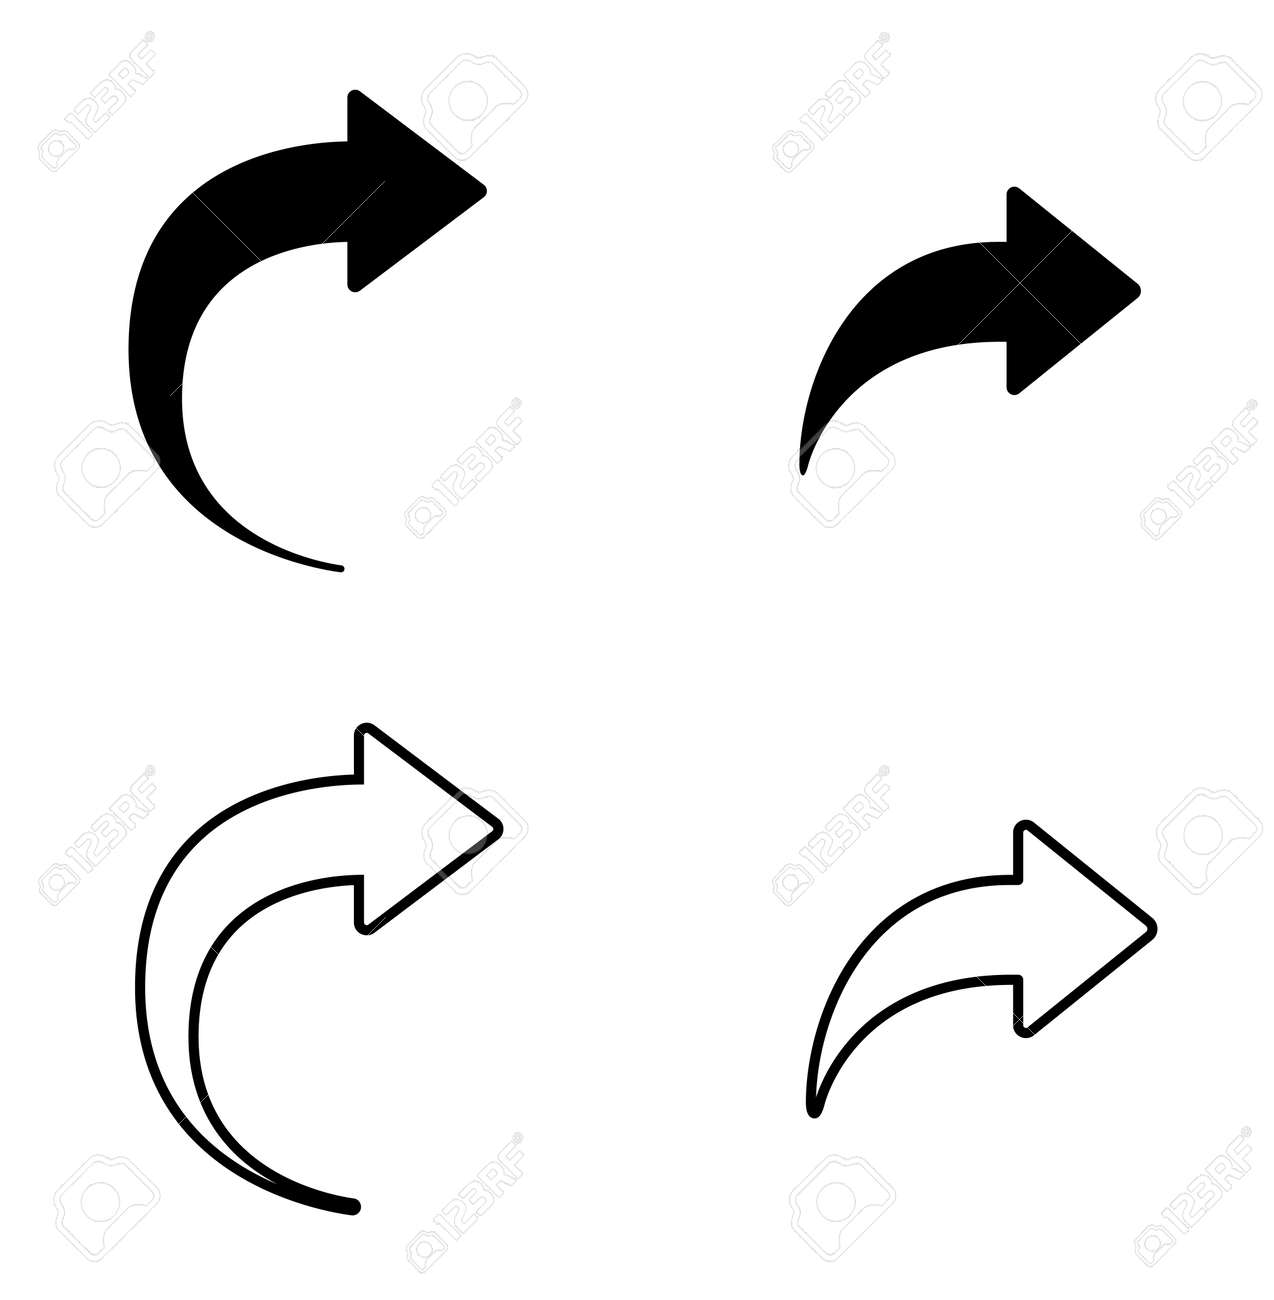 Set of arrow back icon and button - 169458652